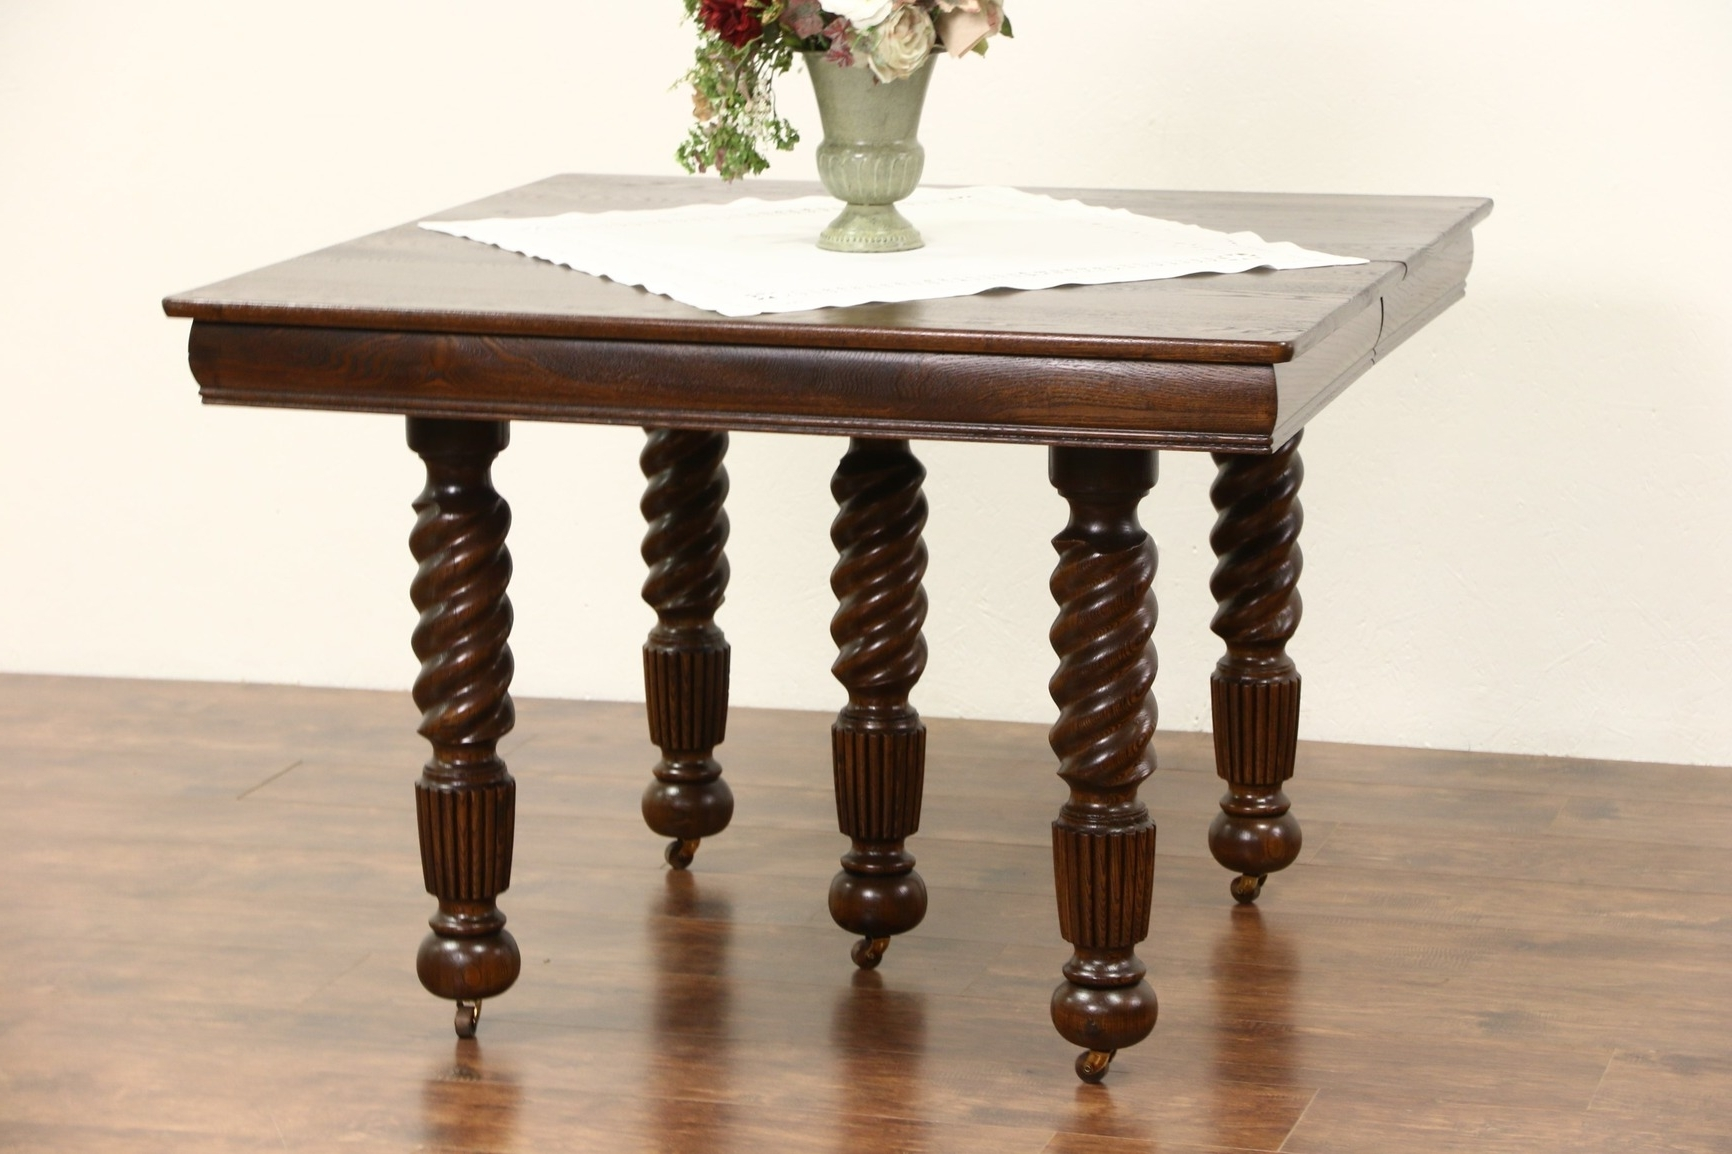 Most Recently Released Square Oak Dining Tables With Sold – Oak 1900 Antique Square Dining Table, 4 Leaves, 5 Spiral Legs (View 10 of 25)